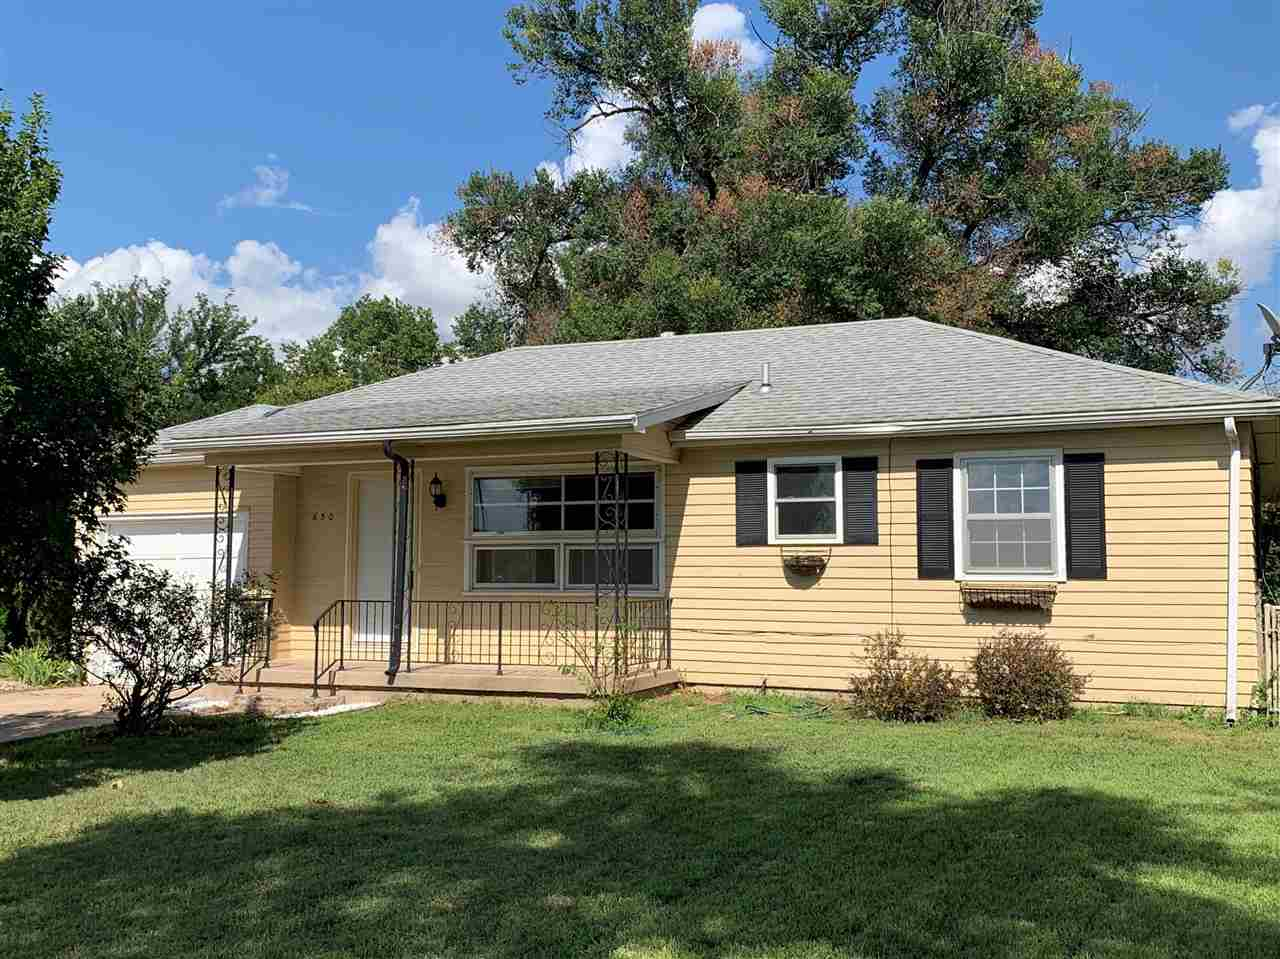 Super cute home close to all the conveniences of West St and just minutes away from the amenities in